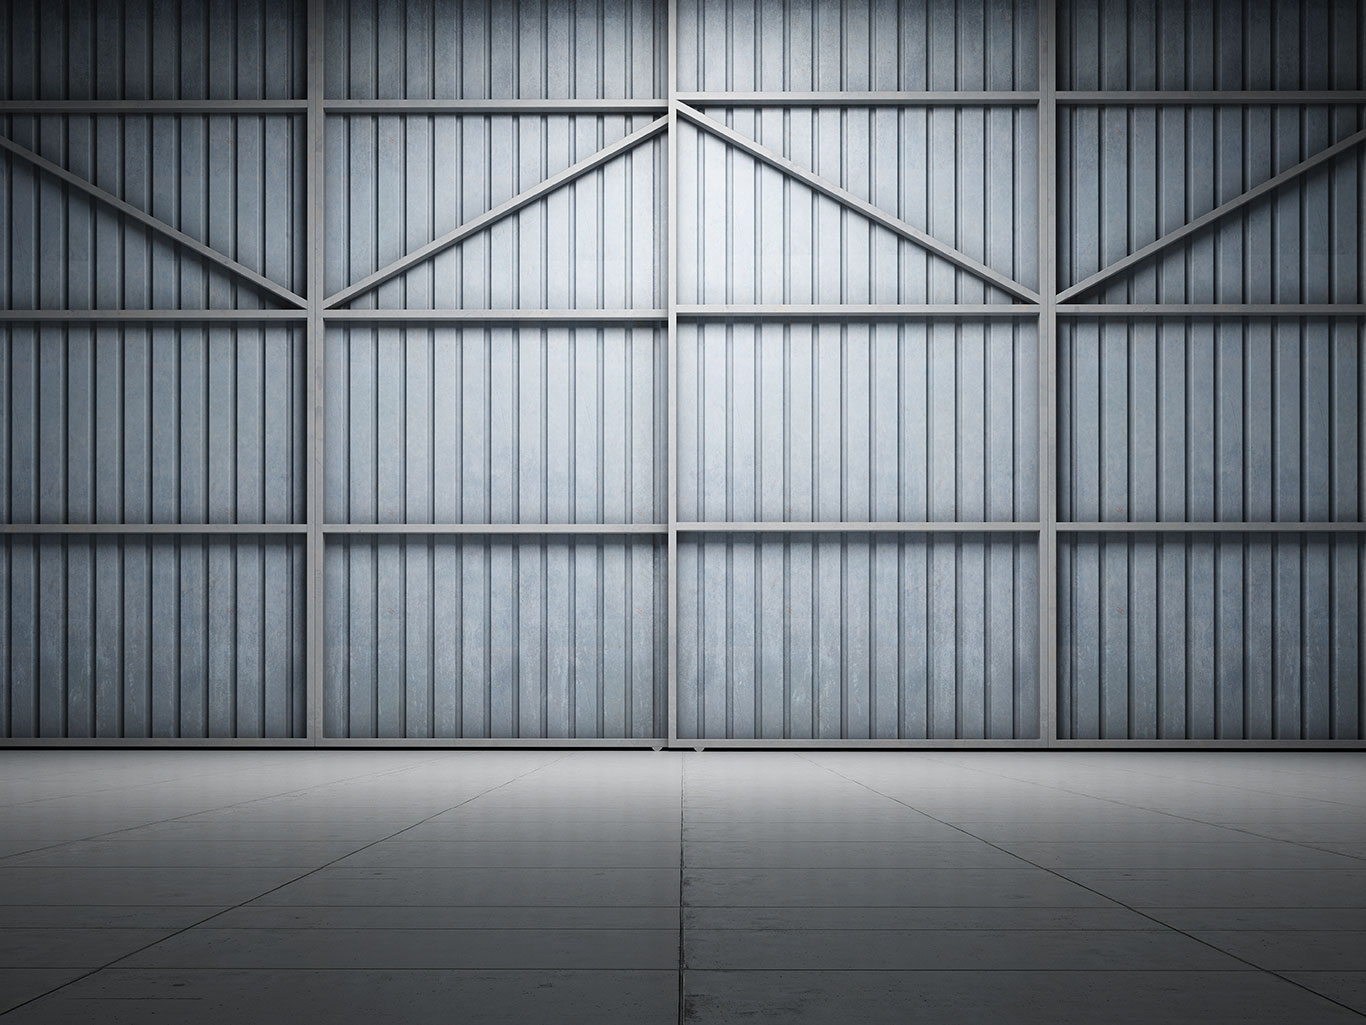 Warehouse-Door